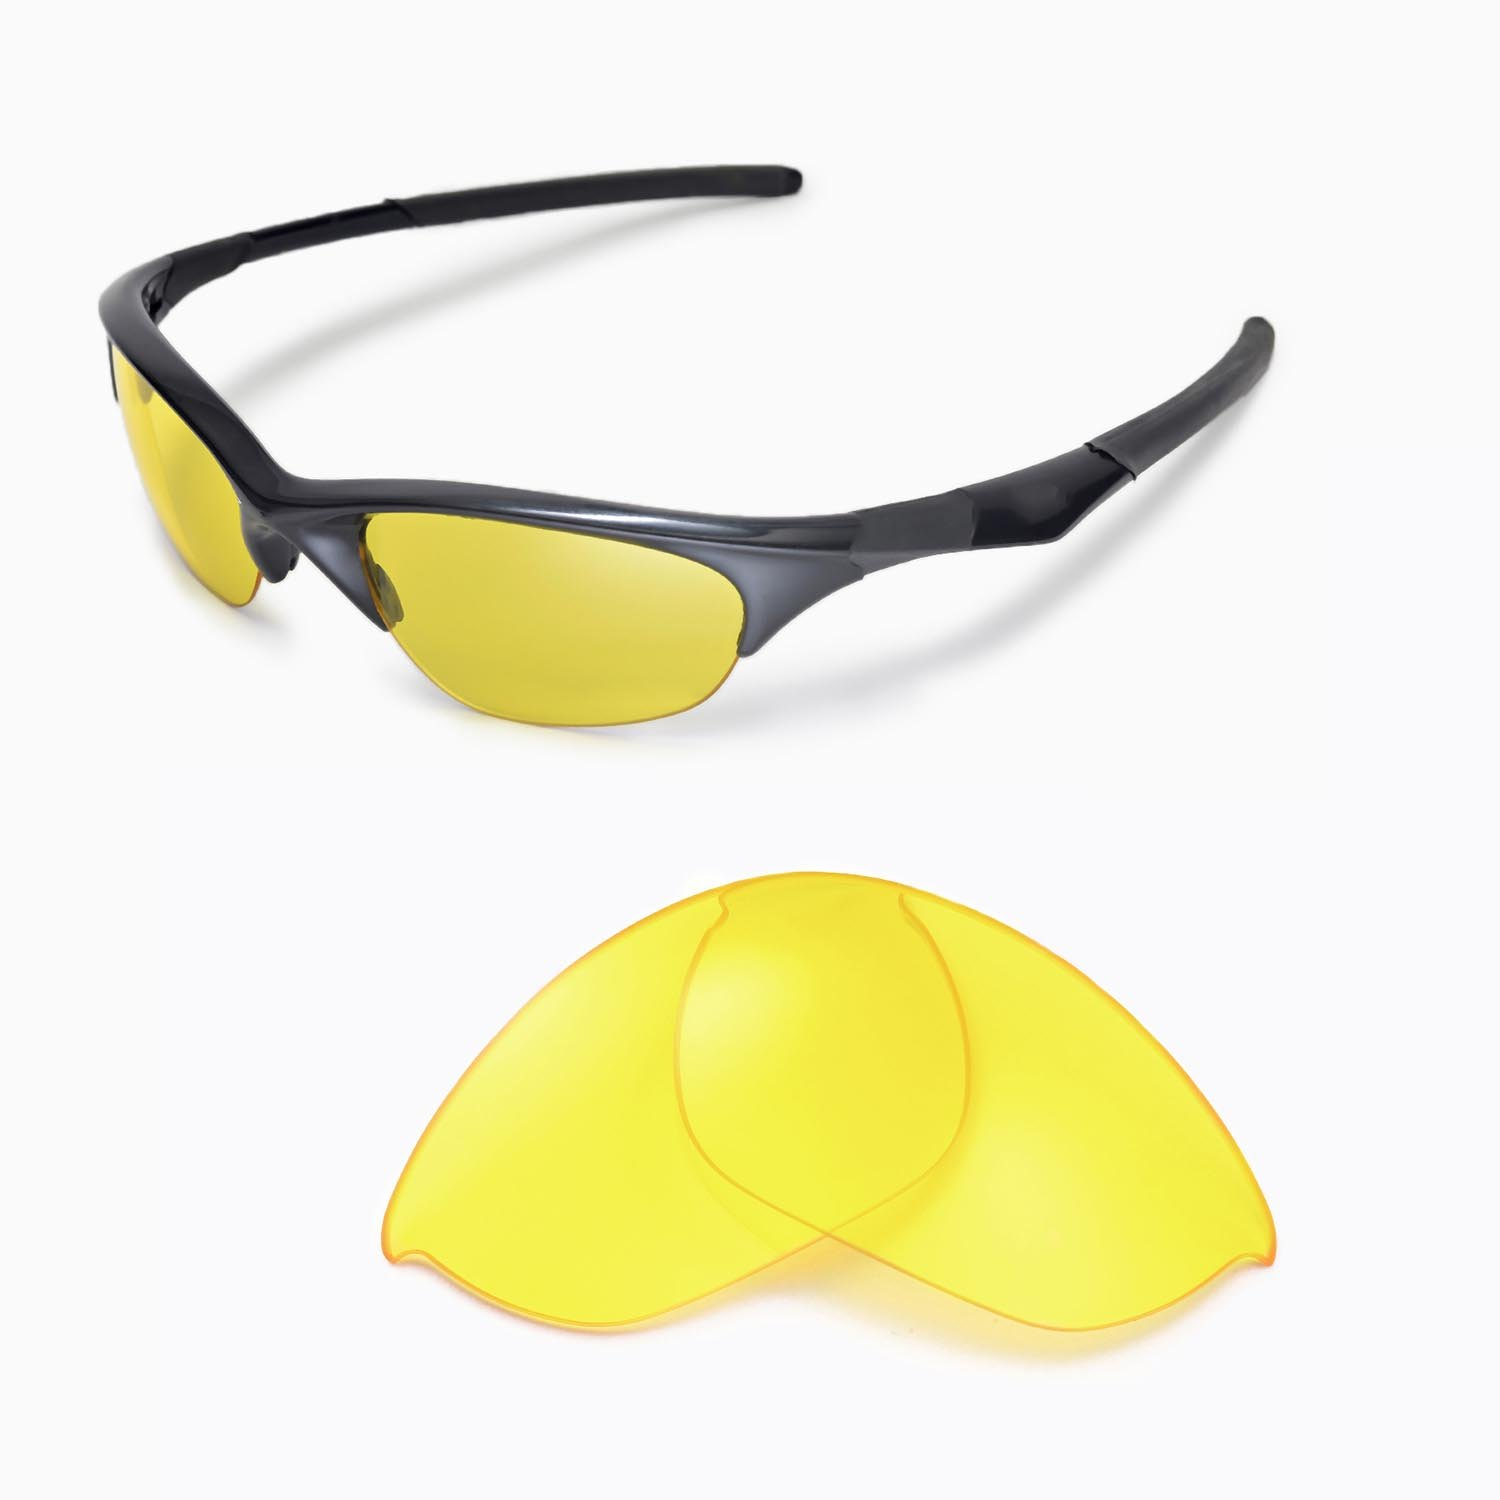 Walleva Replacement Lenses for Oakley Half Jacket Sunglasses - Multiple Options Available (Yellow)